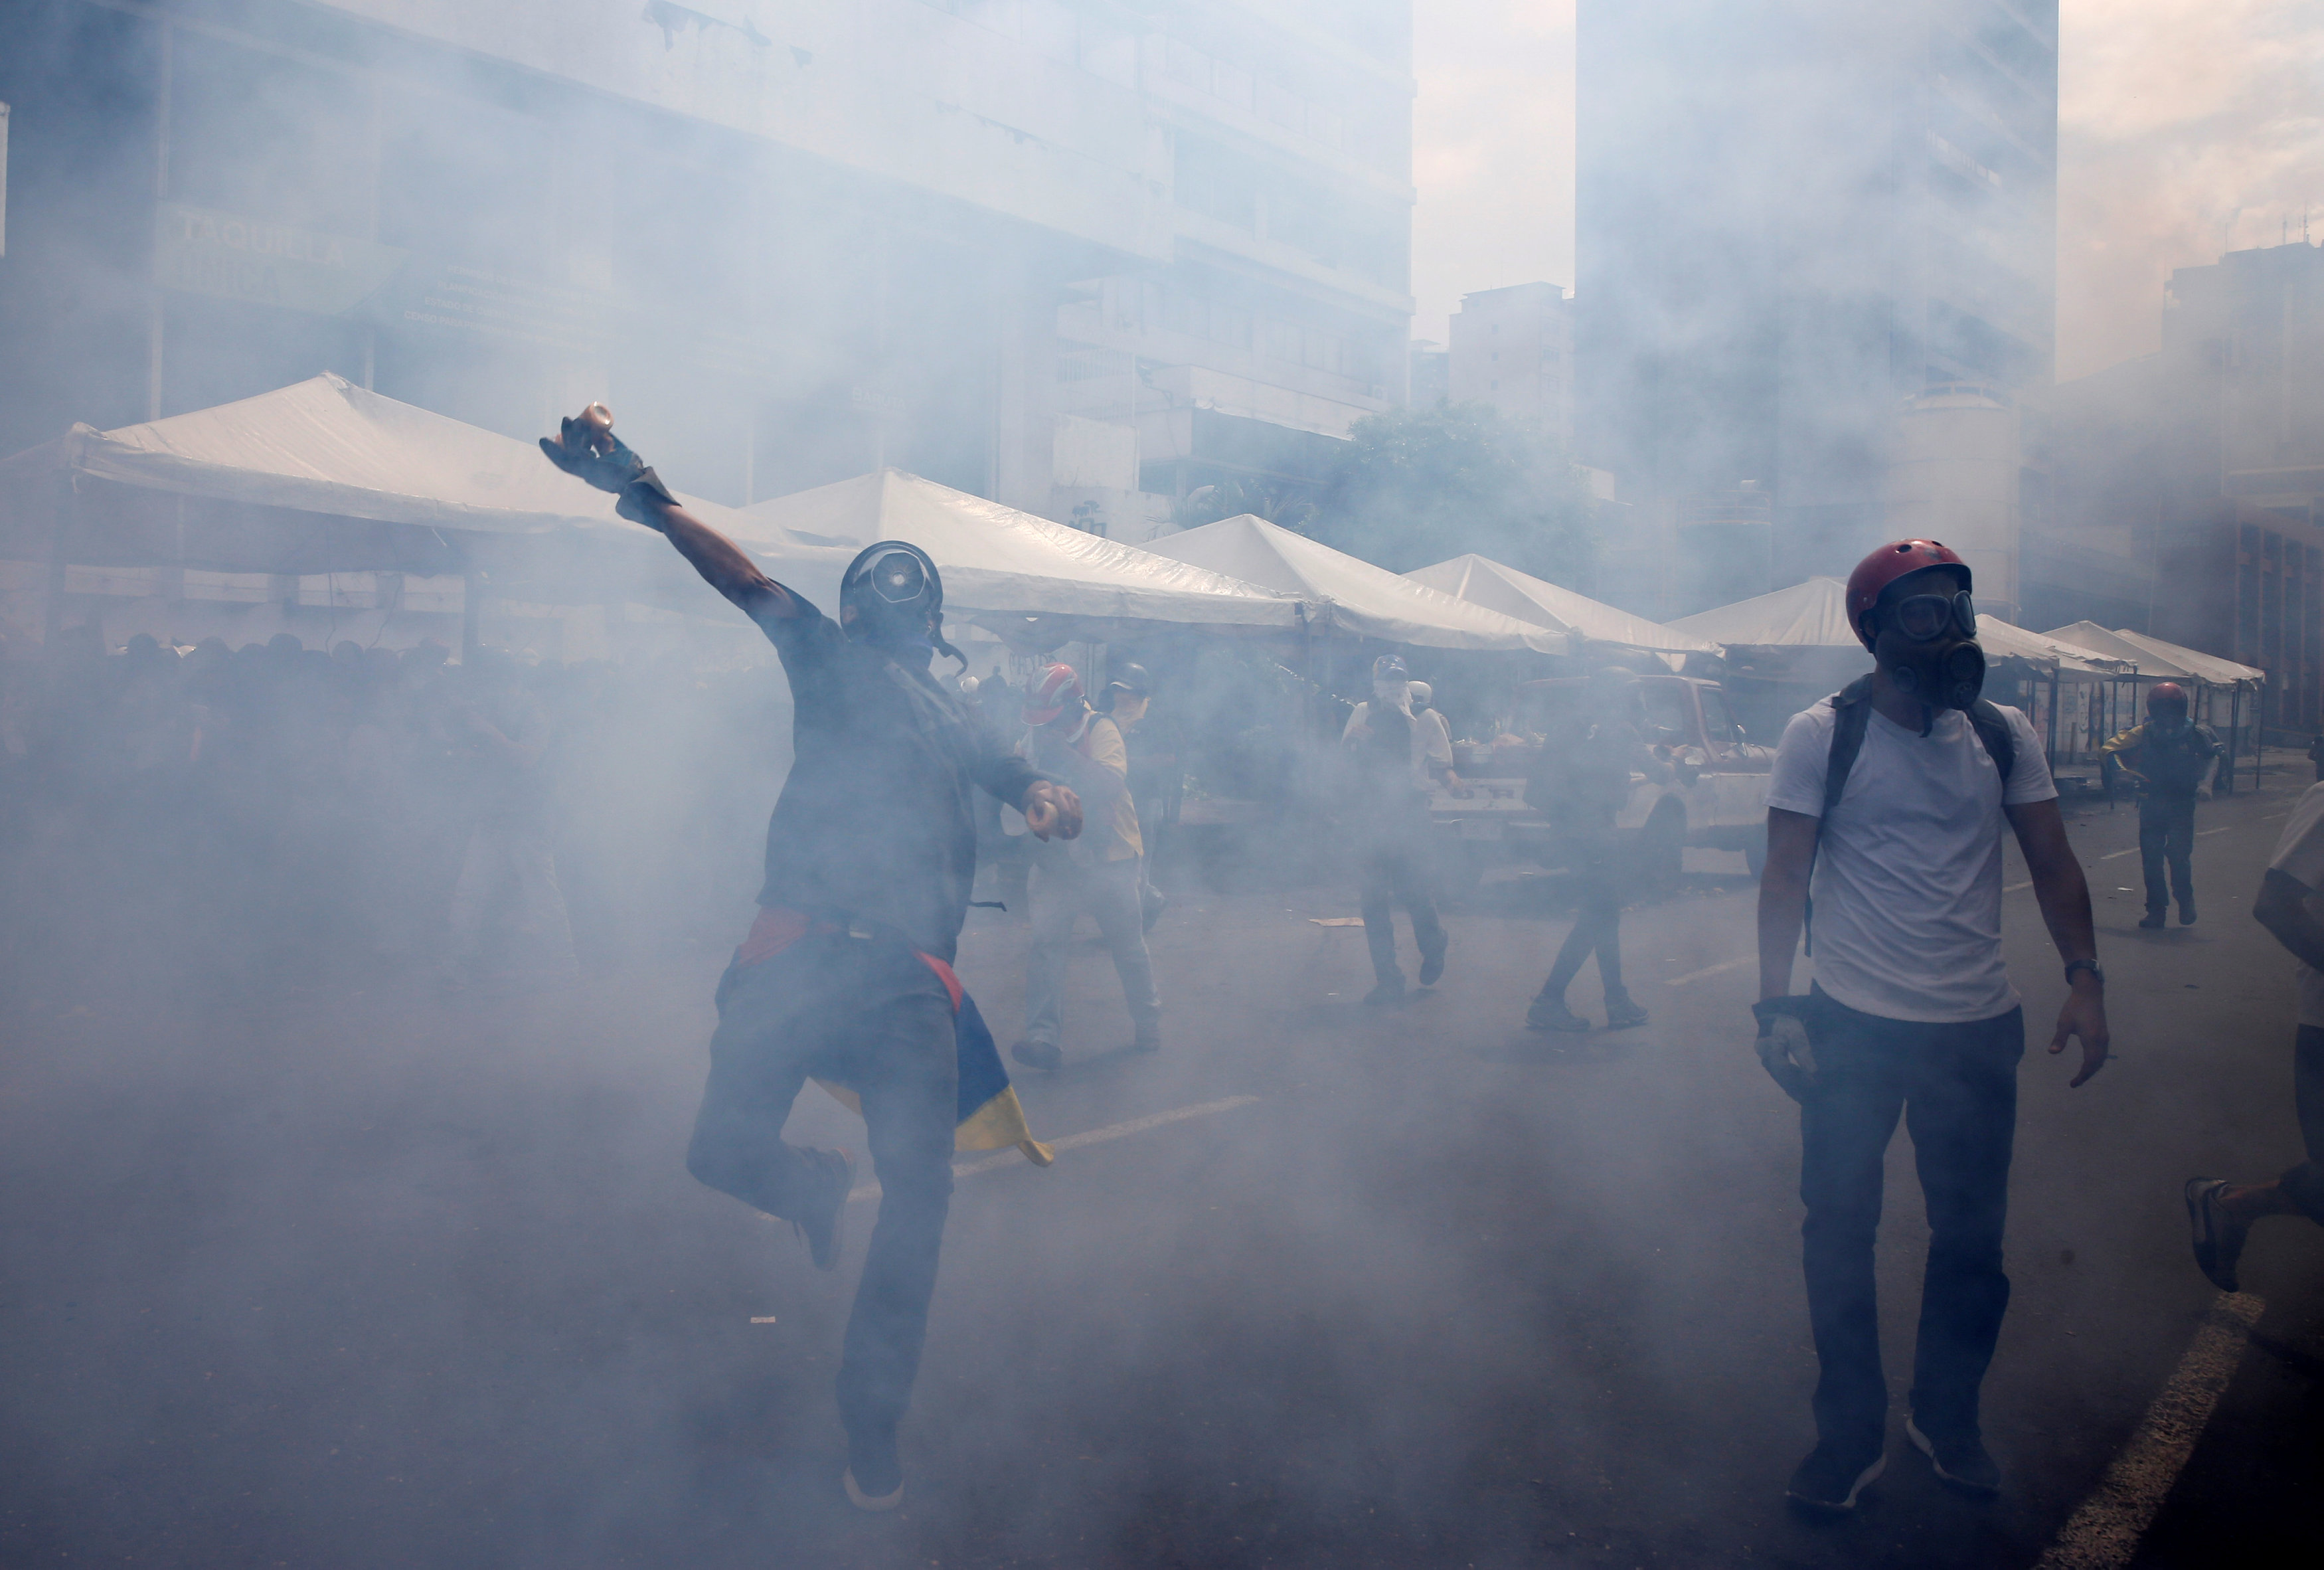 Demonstrators clash with riot security forces while rallying against Venezuela's President Nicolas Maduro in Caracas, Venezuela, June 10, 2017. REUTERS/Ivan Alvarado